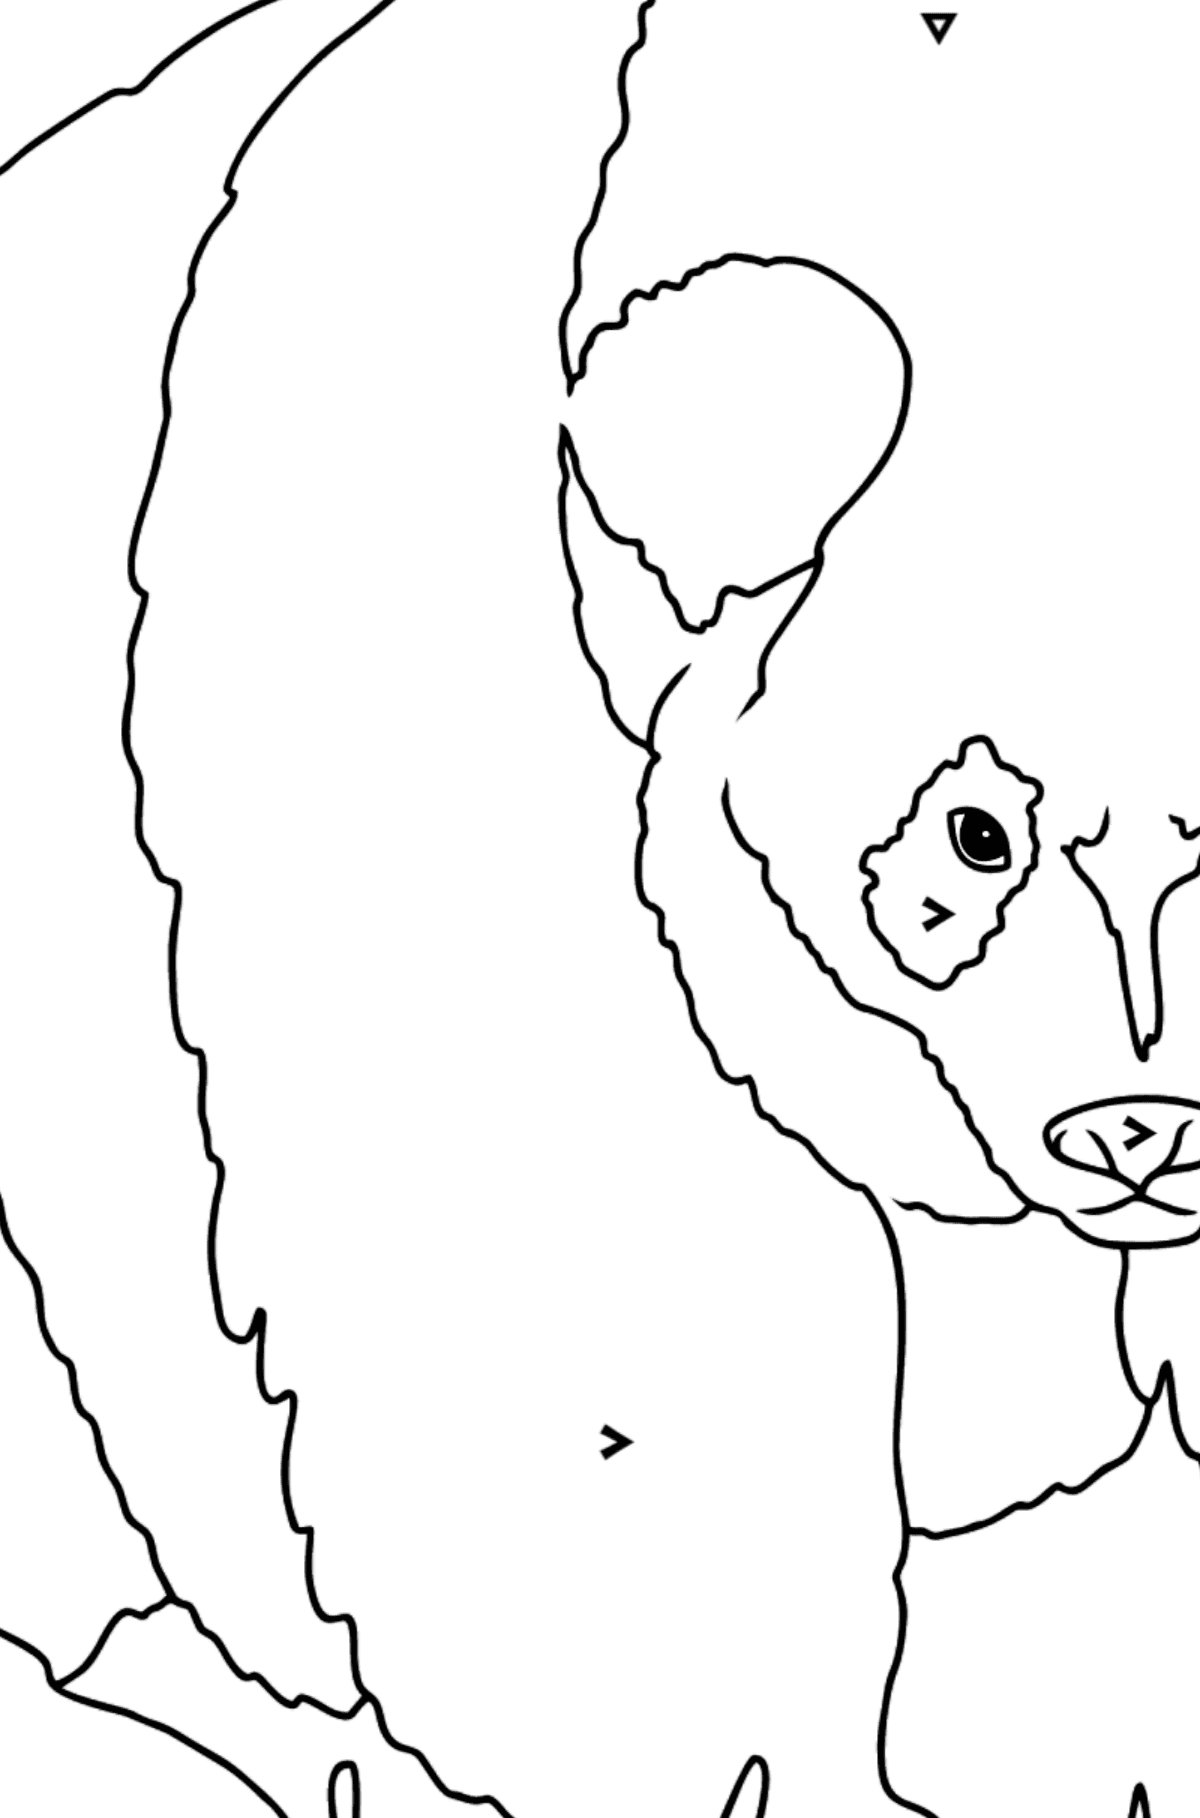 Coloring Page - A Panda is Standing - Coloring by Symbols for Kids